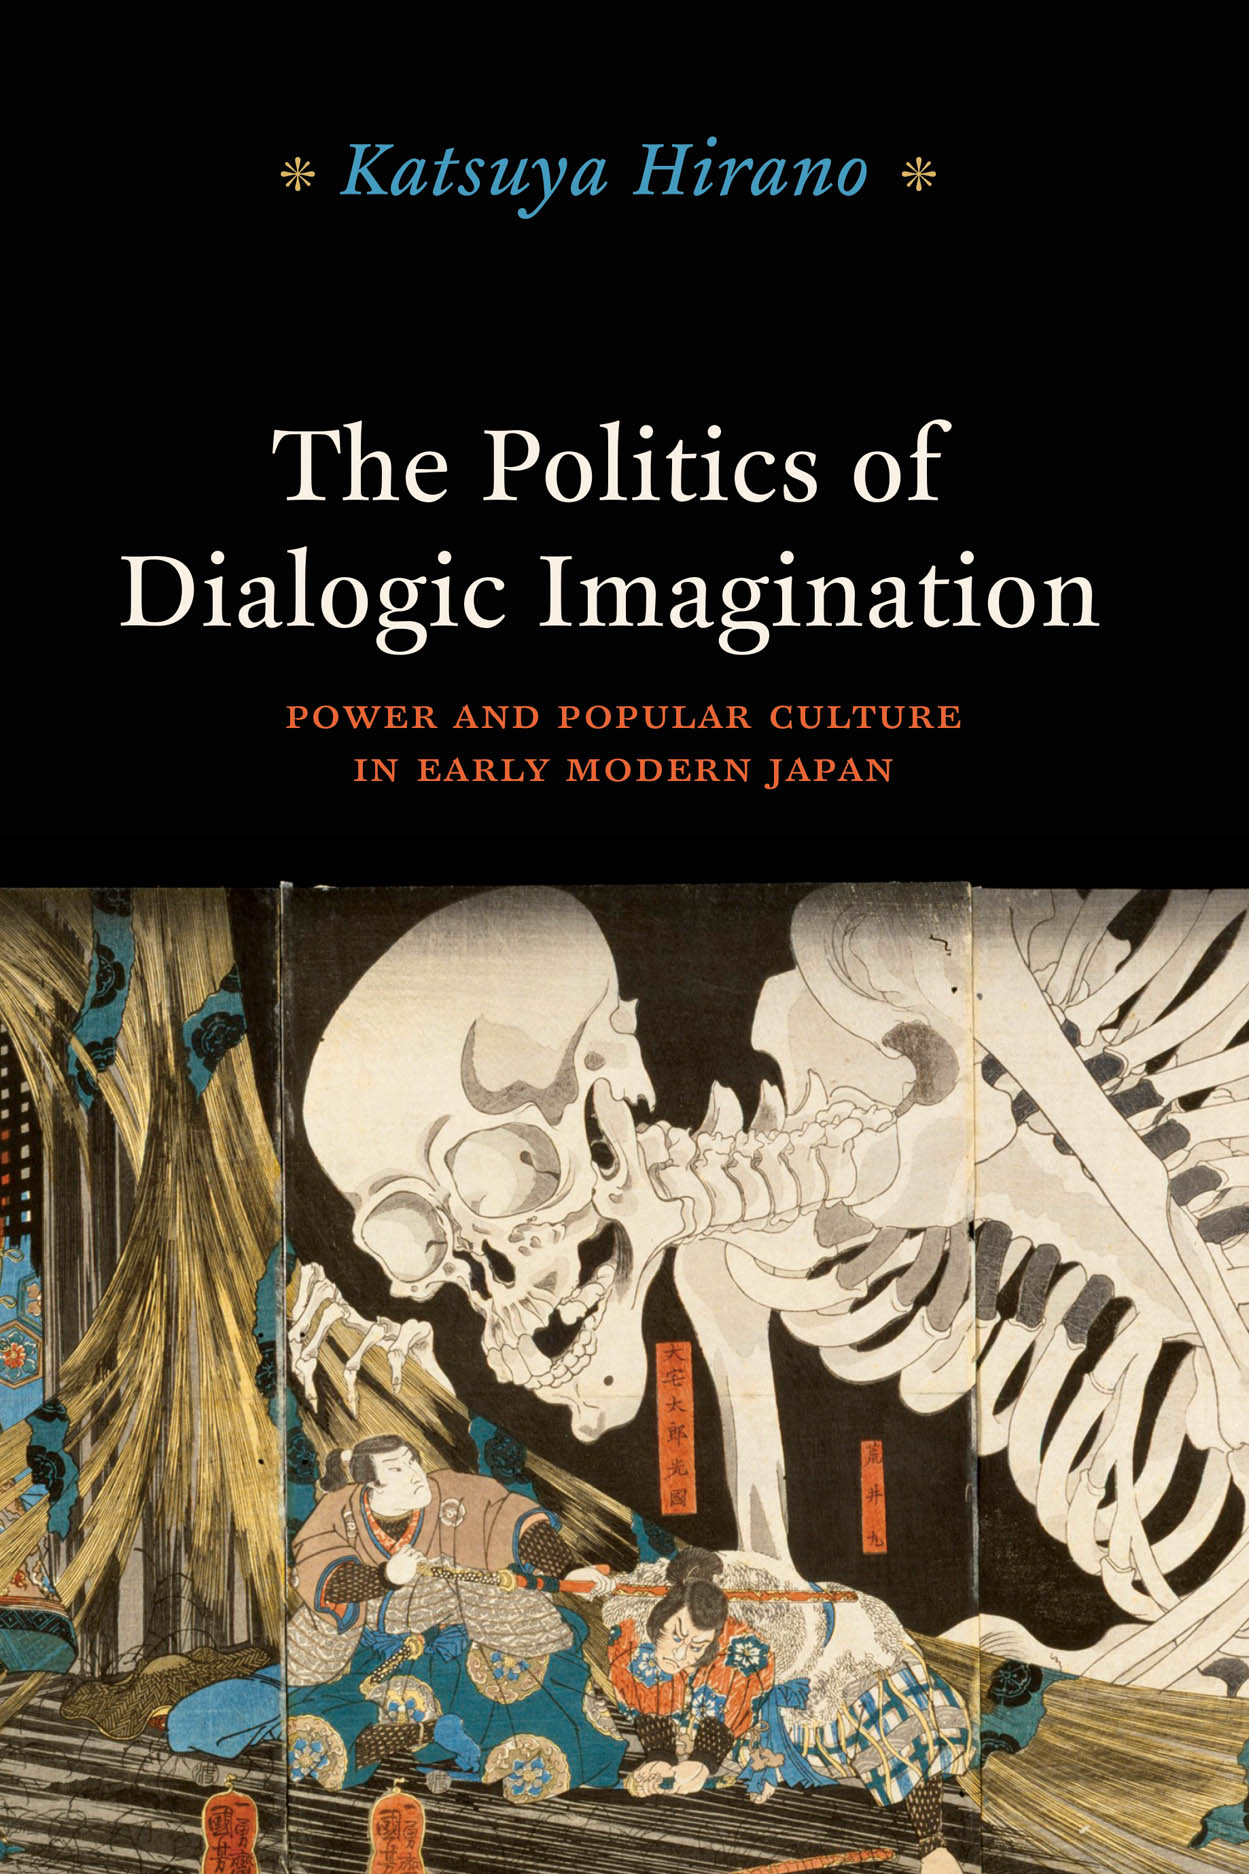 The Politics of Dialogic Imagination